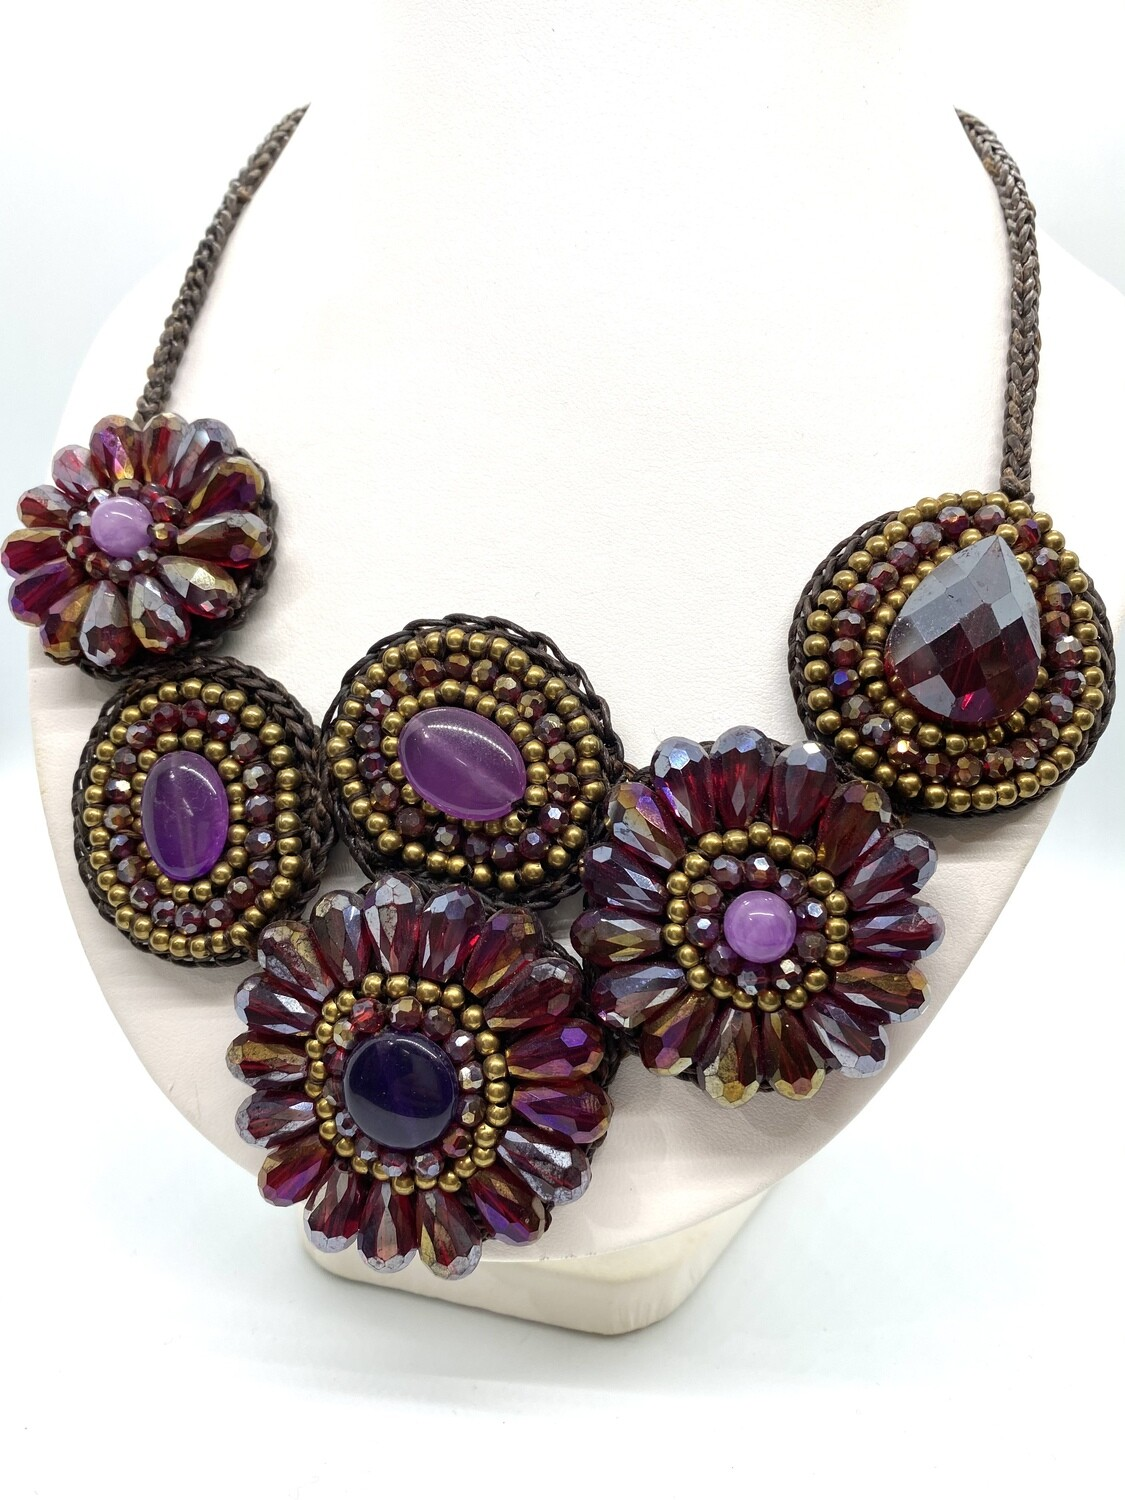 4152 Bali Boho  Beaded Necklace